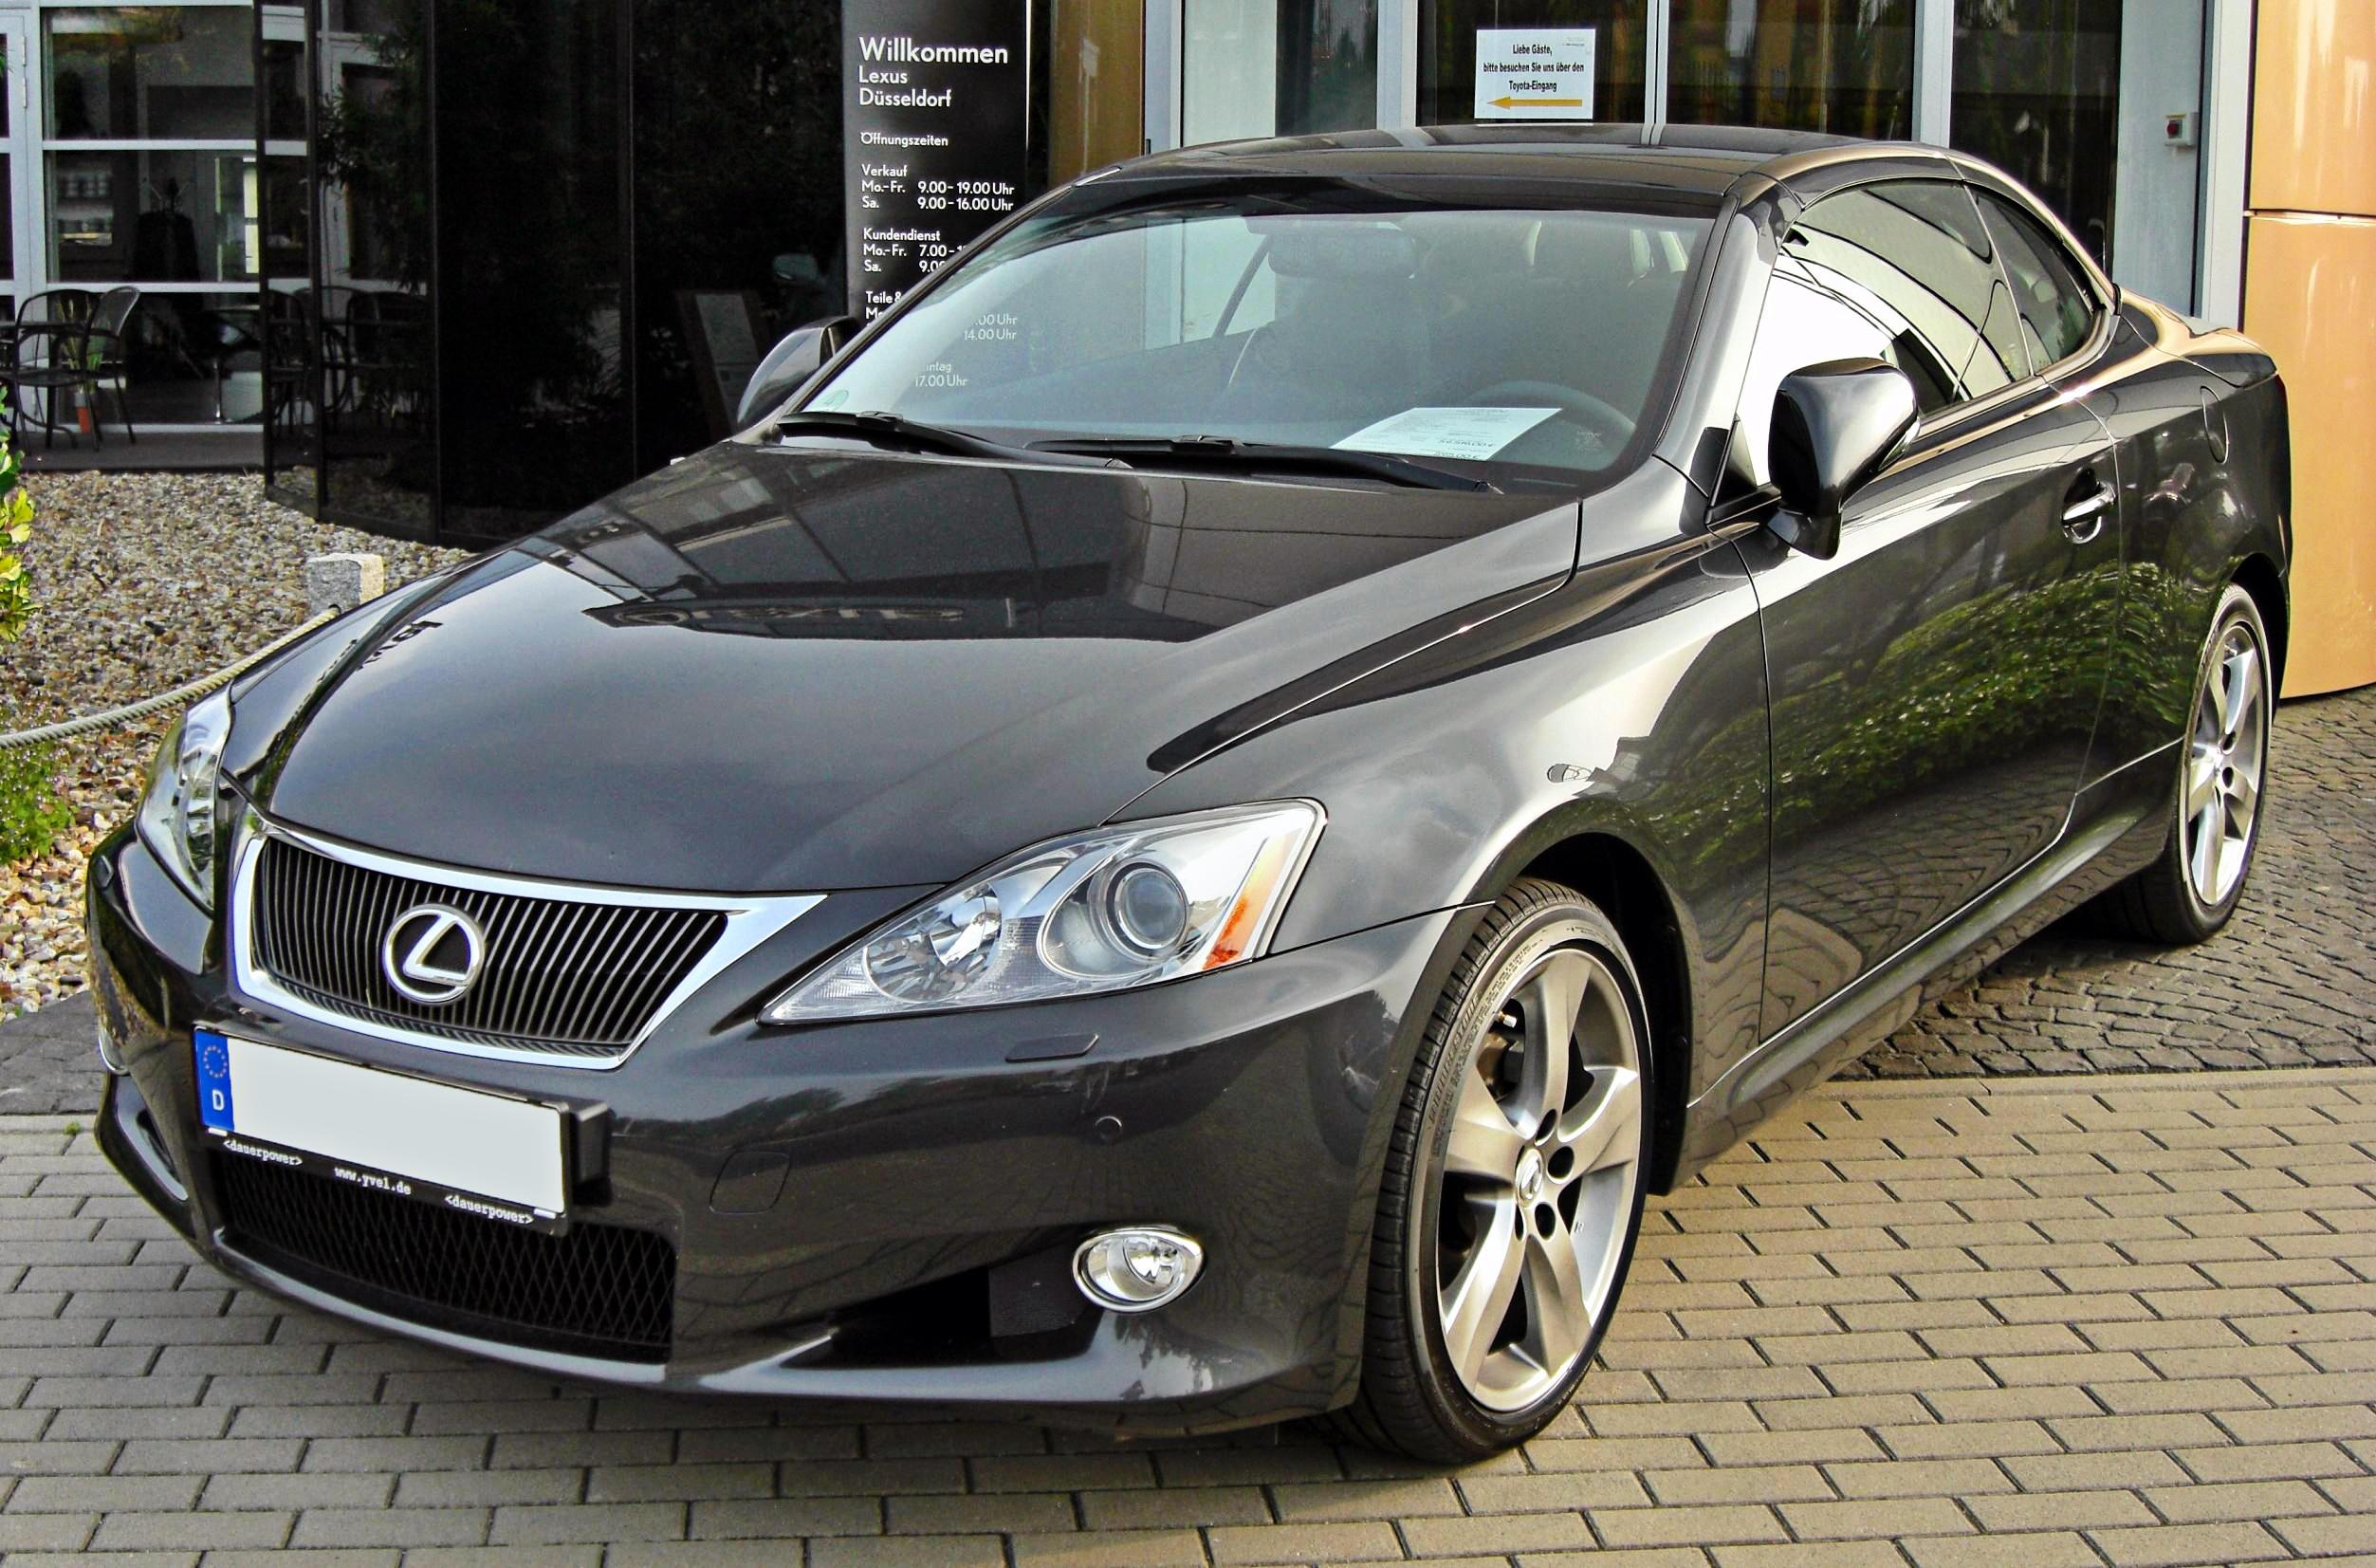 datei:lexus is 250 c 20090809 front – wikipedia